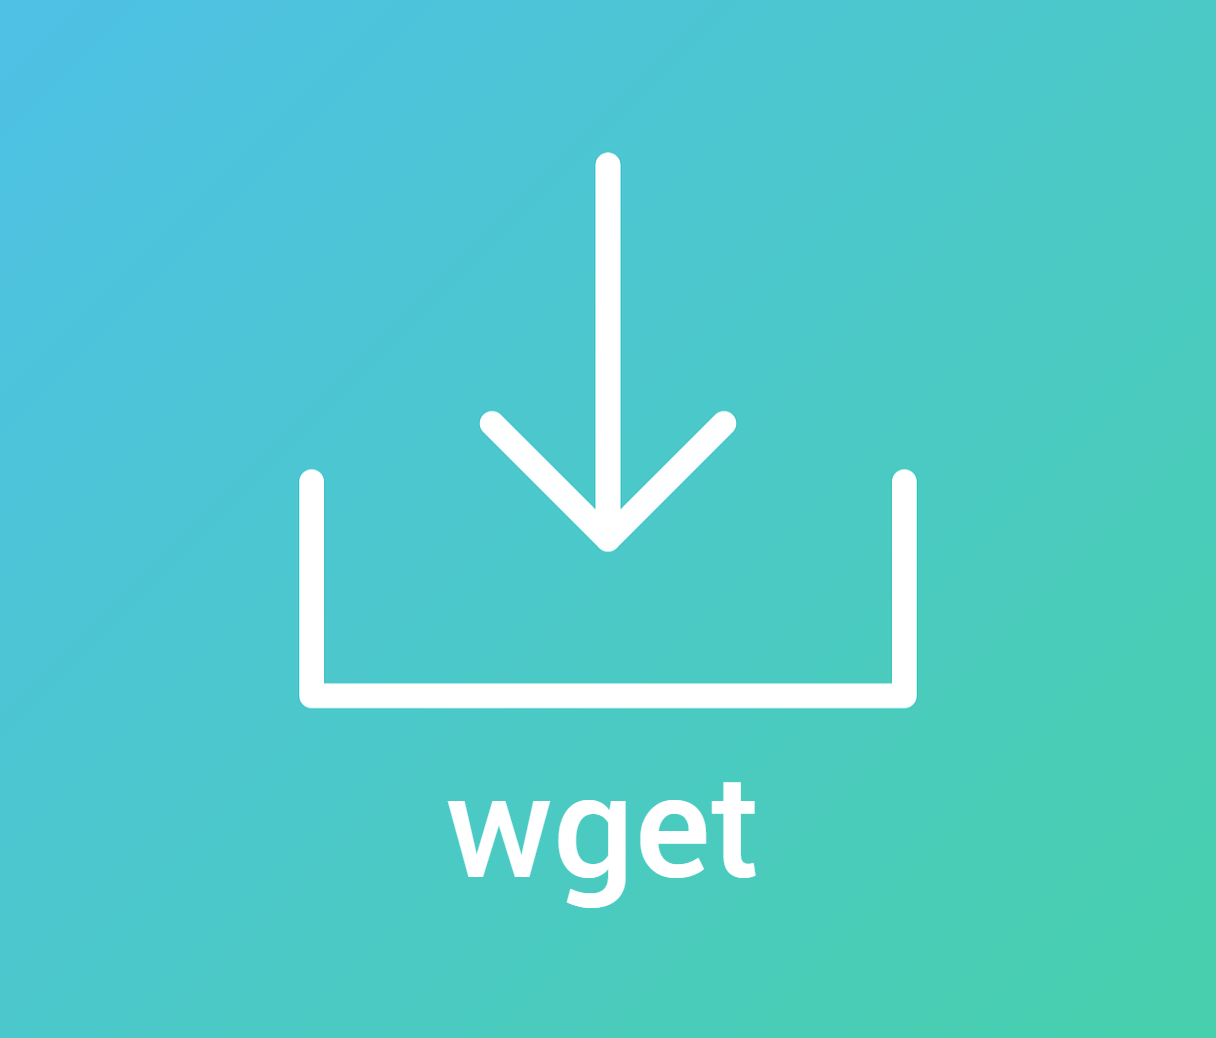 How To Download Files And Web Pages With Wget Boolean World Boat Electrical Wiring Diagrams 404 Page Not Found Error Ever Cover Image